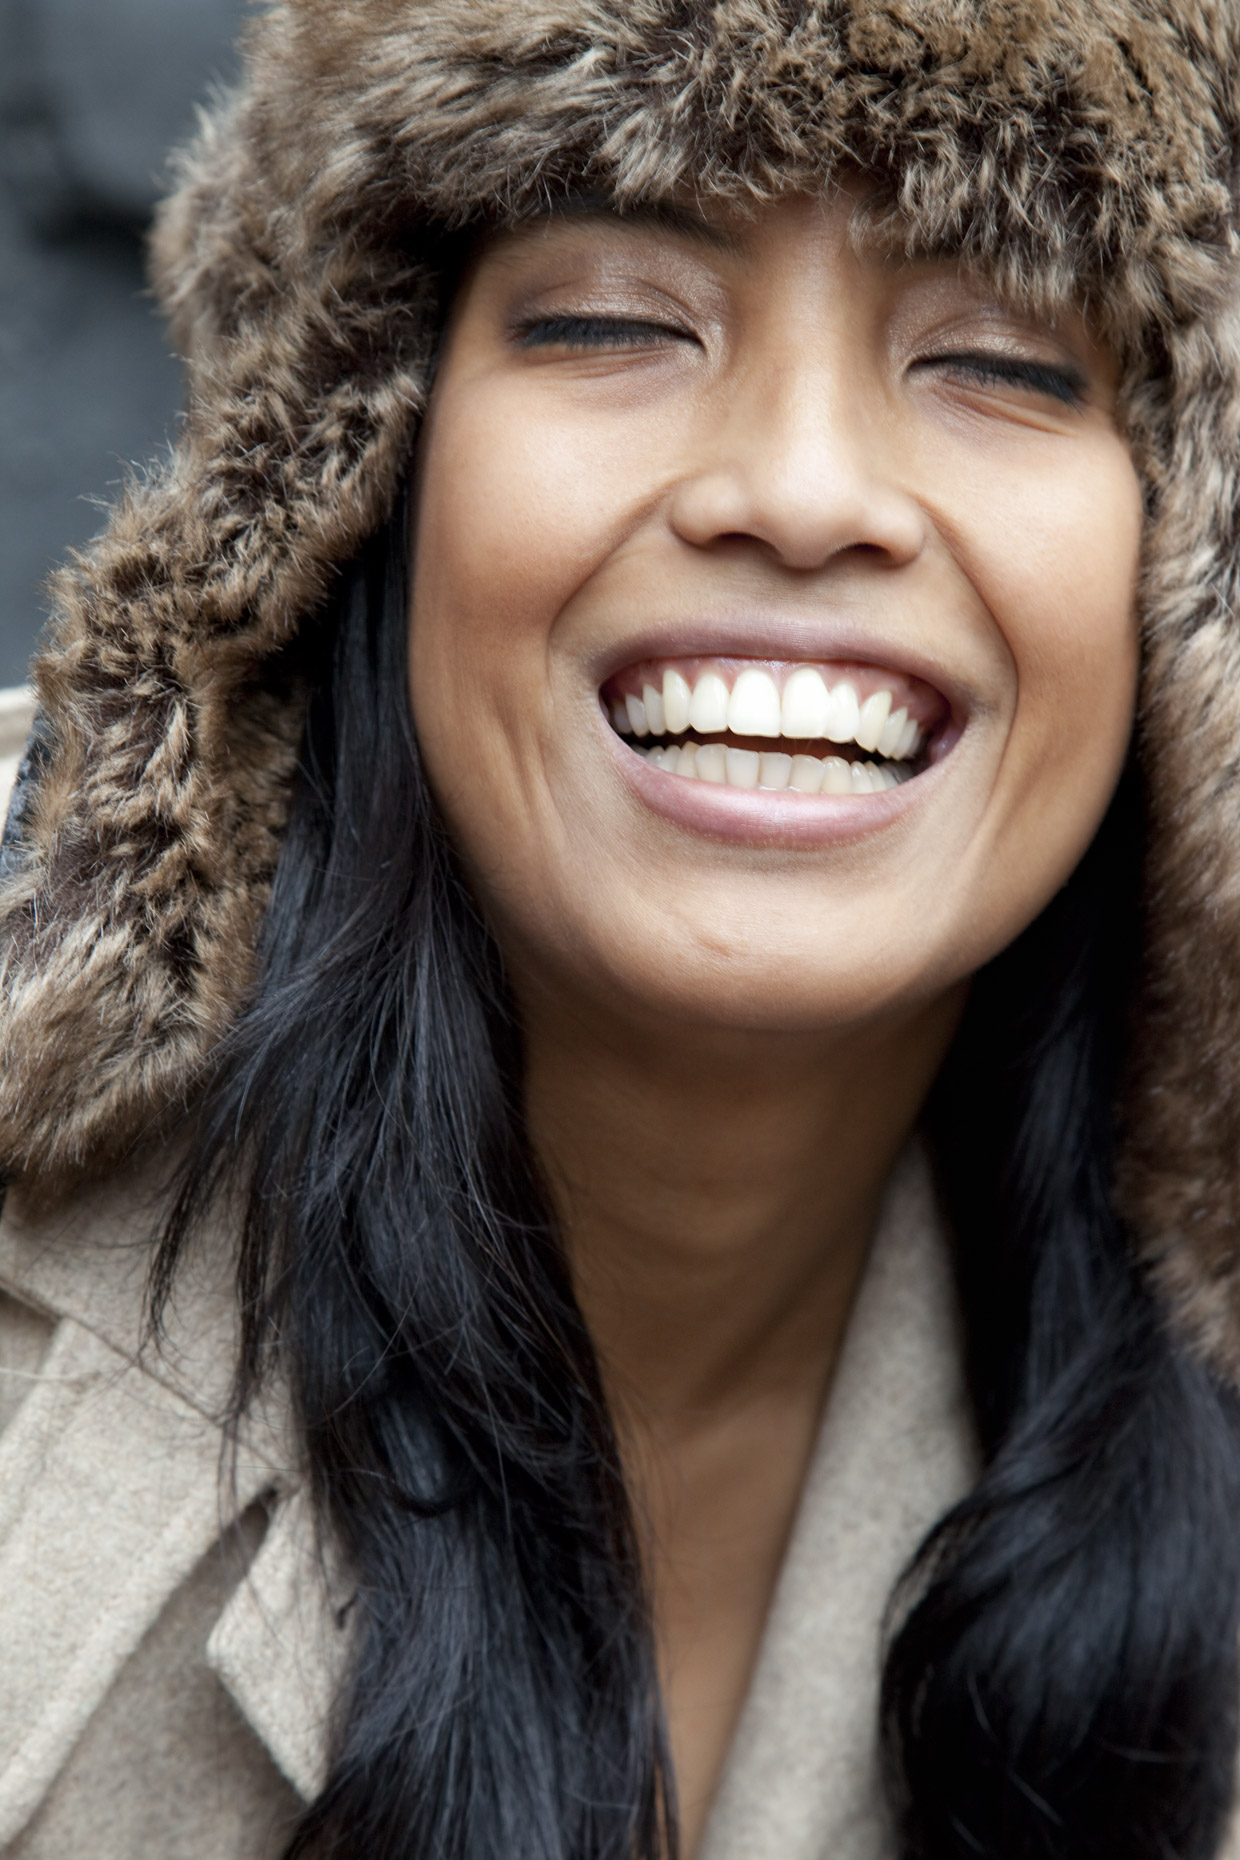 Inti St Clair portrait of Indian woman in fur hat laughing with eyes closed